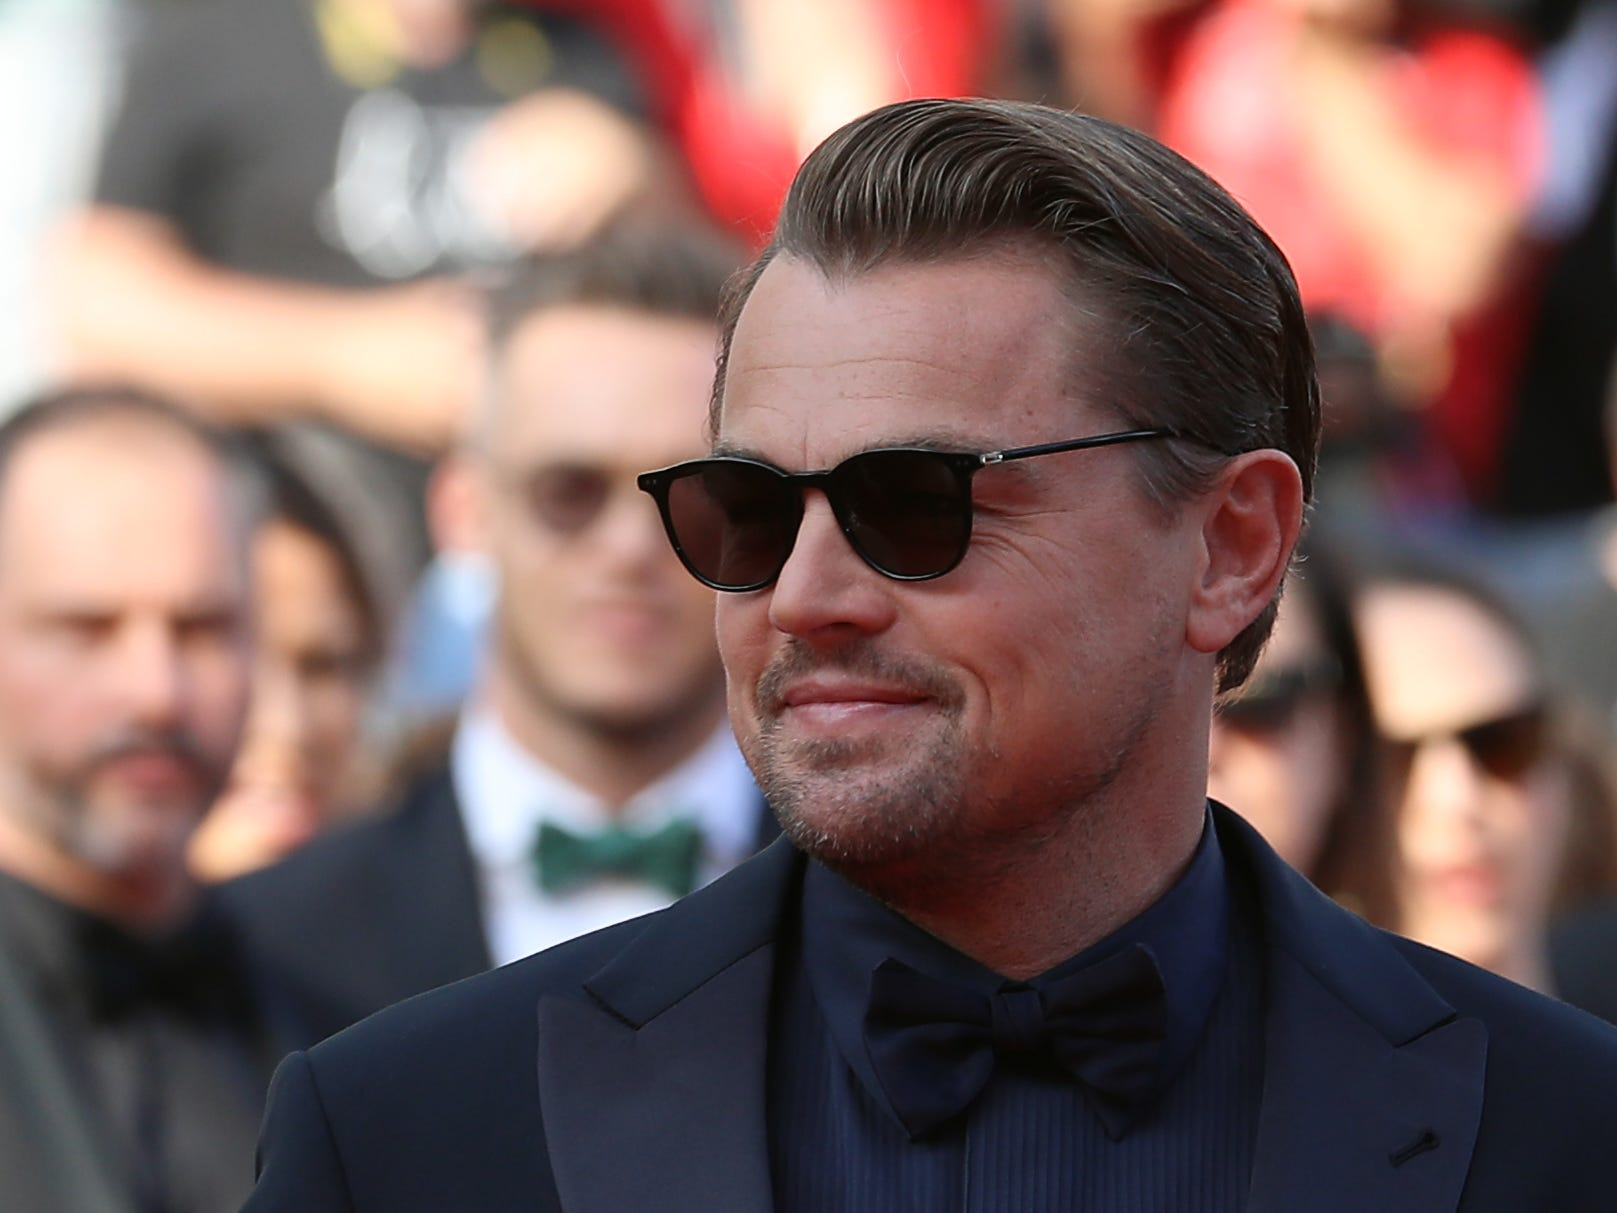 """Actor Leonardo DiCaprio arrives for the screening of the film """"The Traitor (Il Traditore)"""" at the 72nd edition of the Cannes Film Festival in Cannes, southern France, on May 23, 2019."""